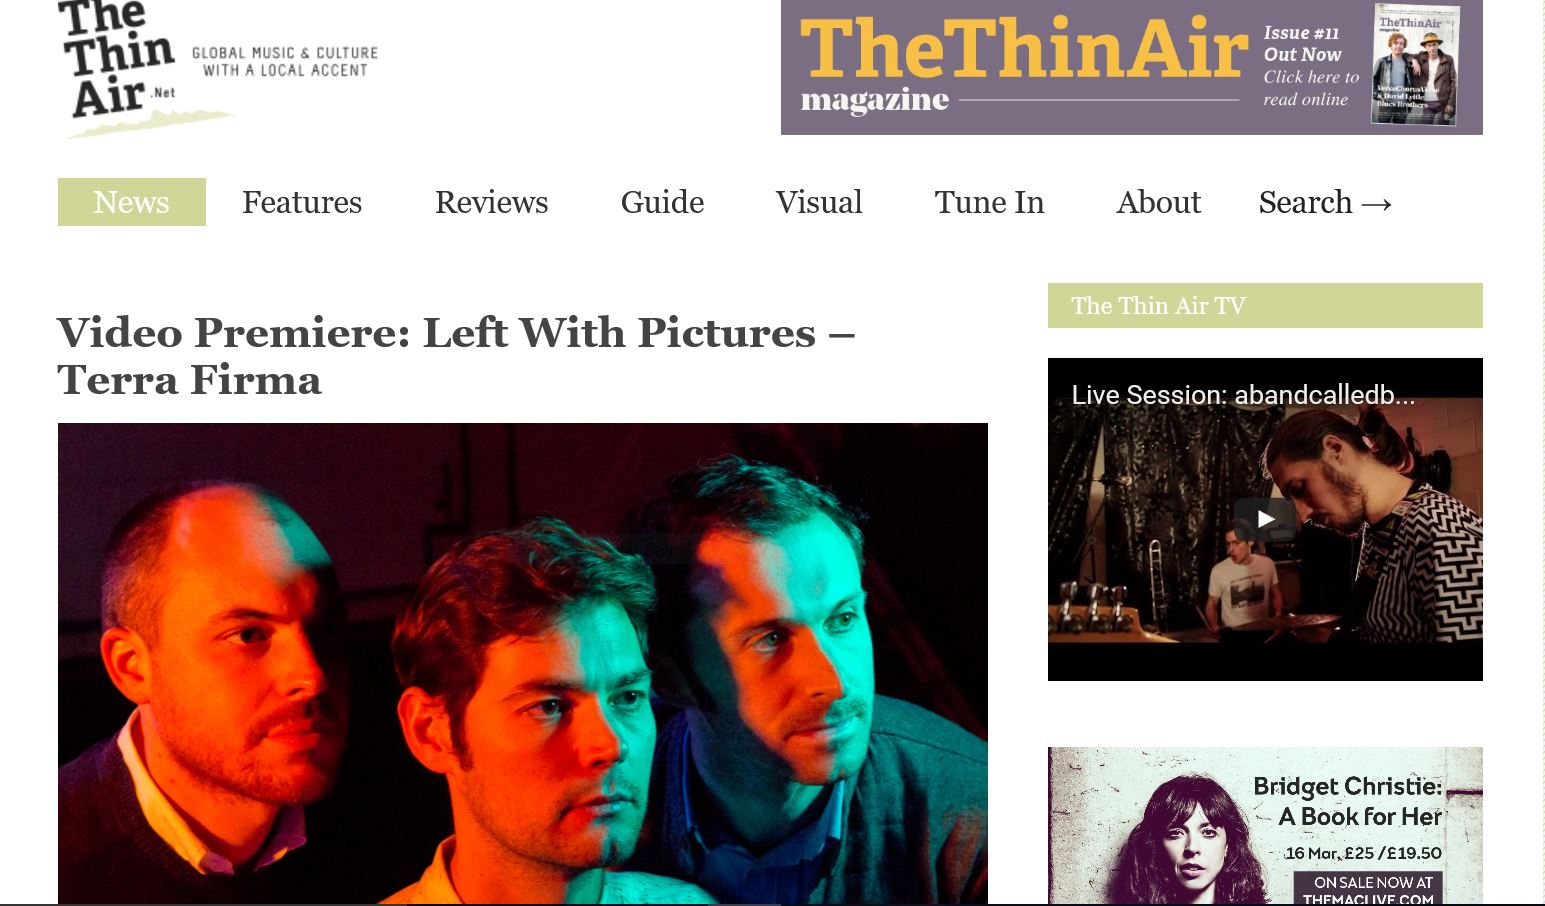 Left With Pictures, Terra Firma, The Thin Air Premiere